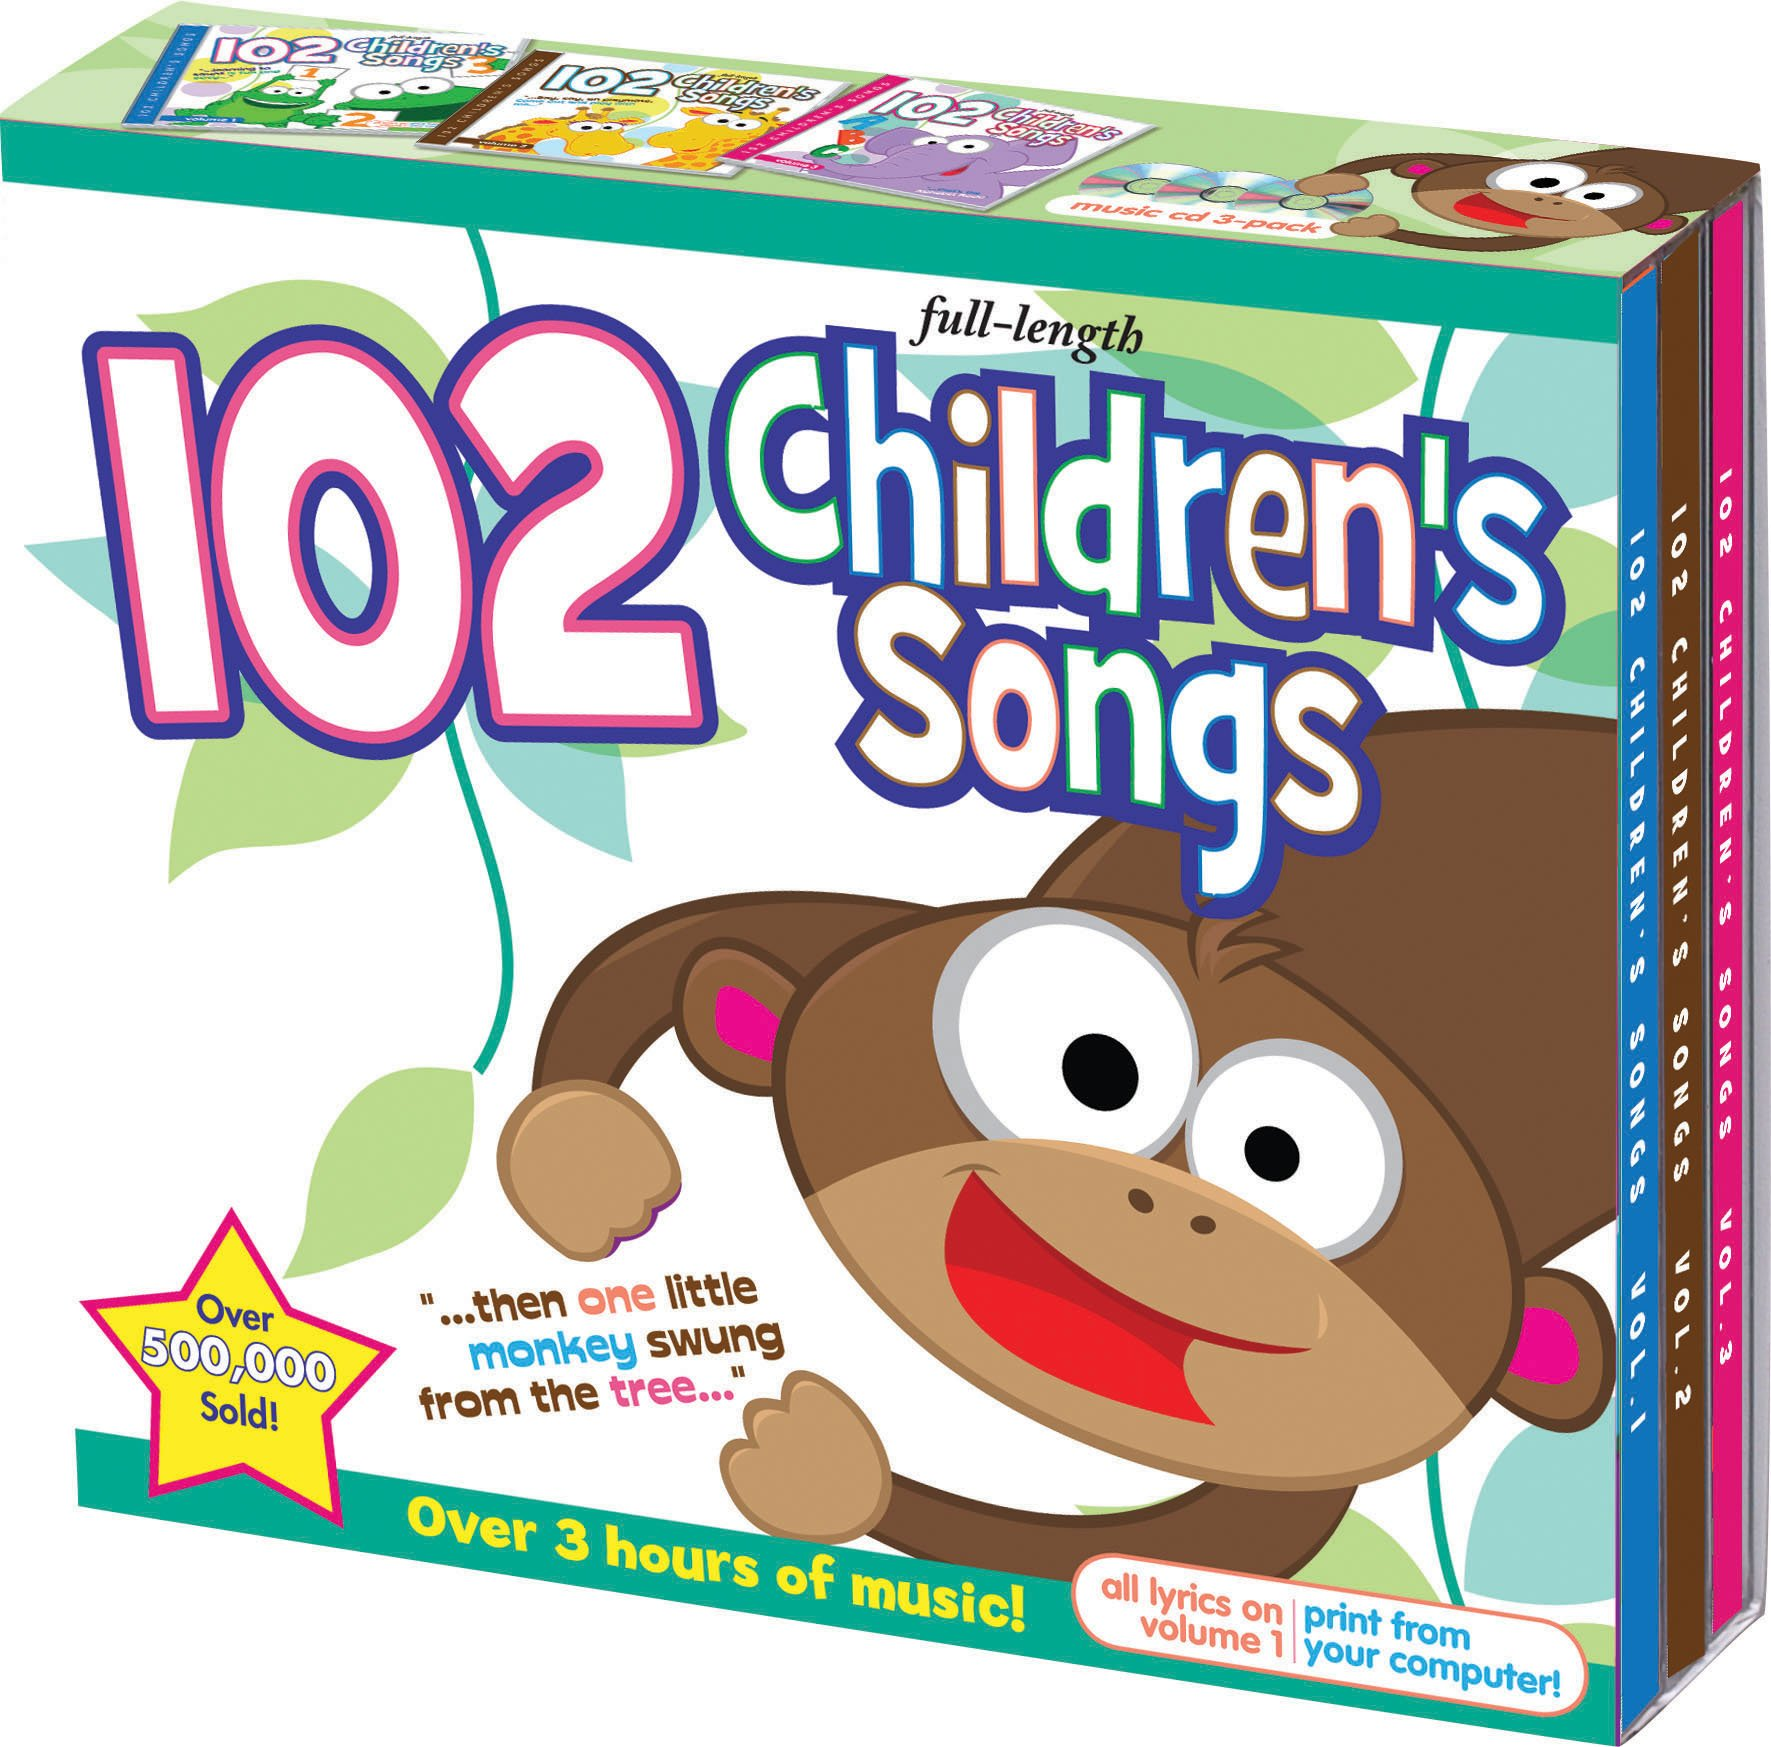 102 Children's Songs 3 CD Set